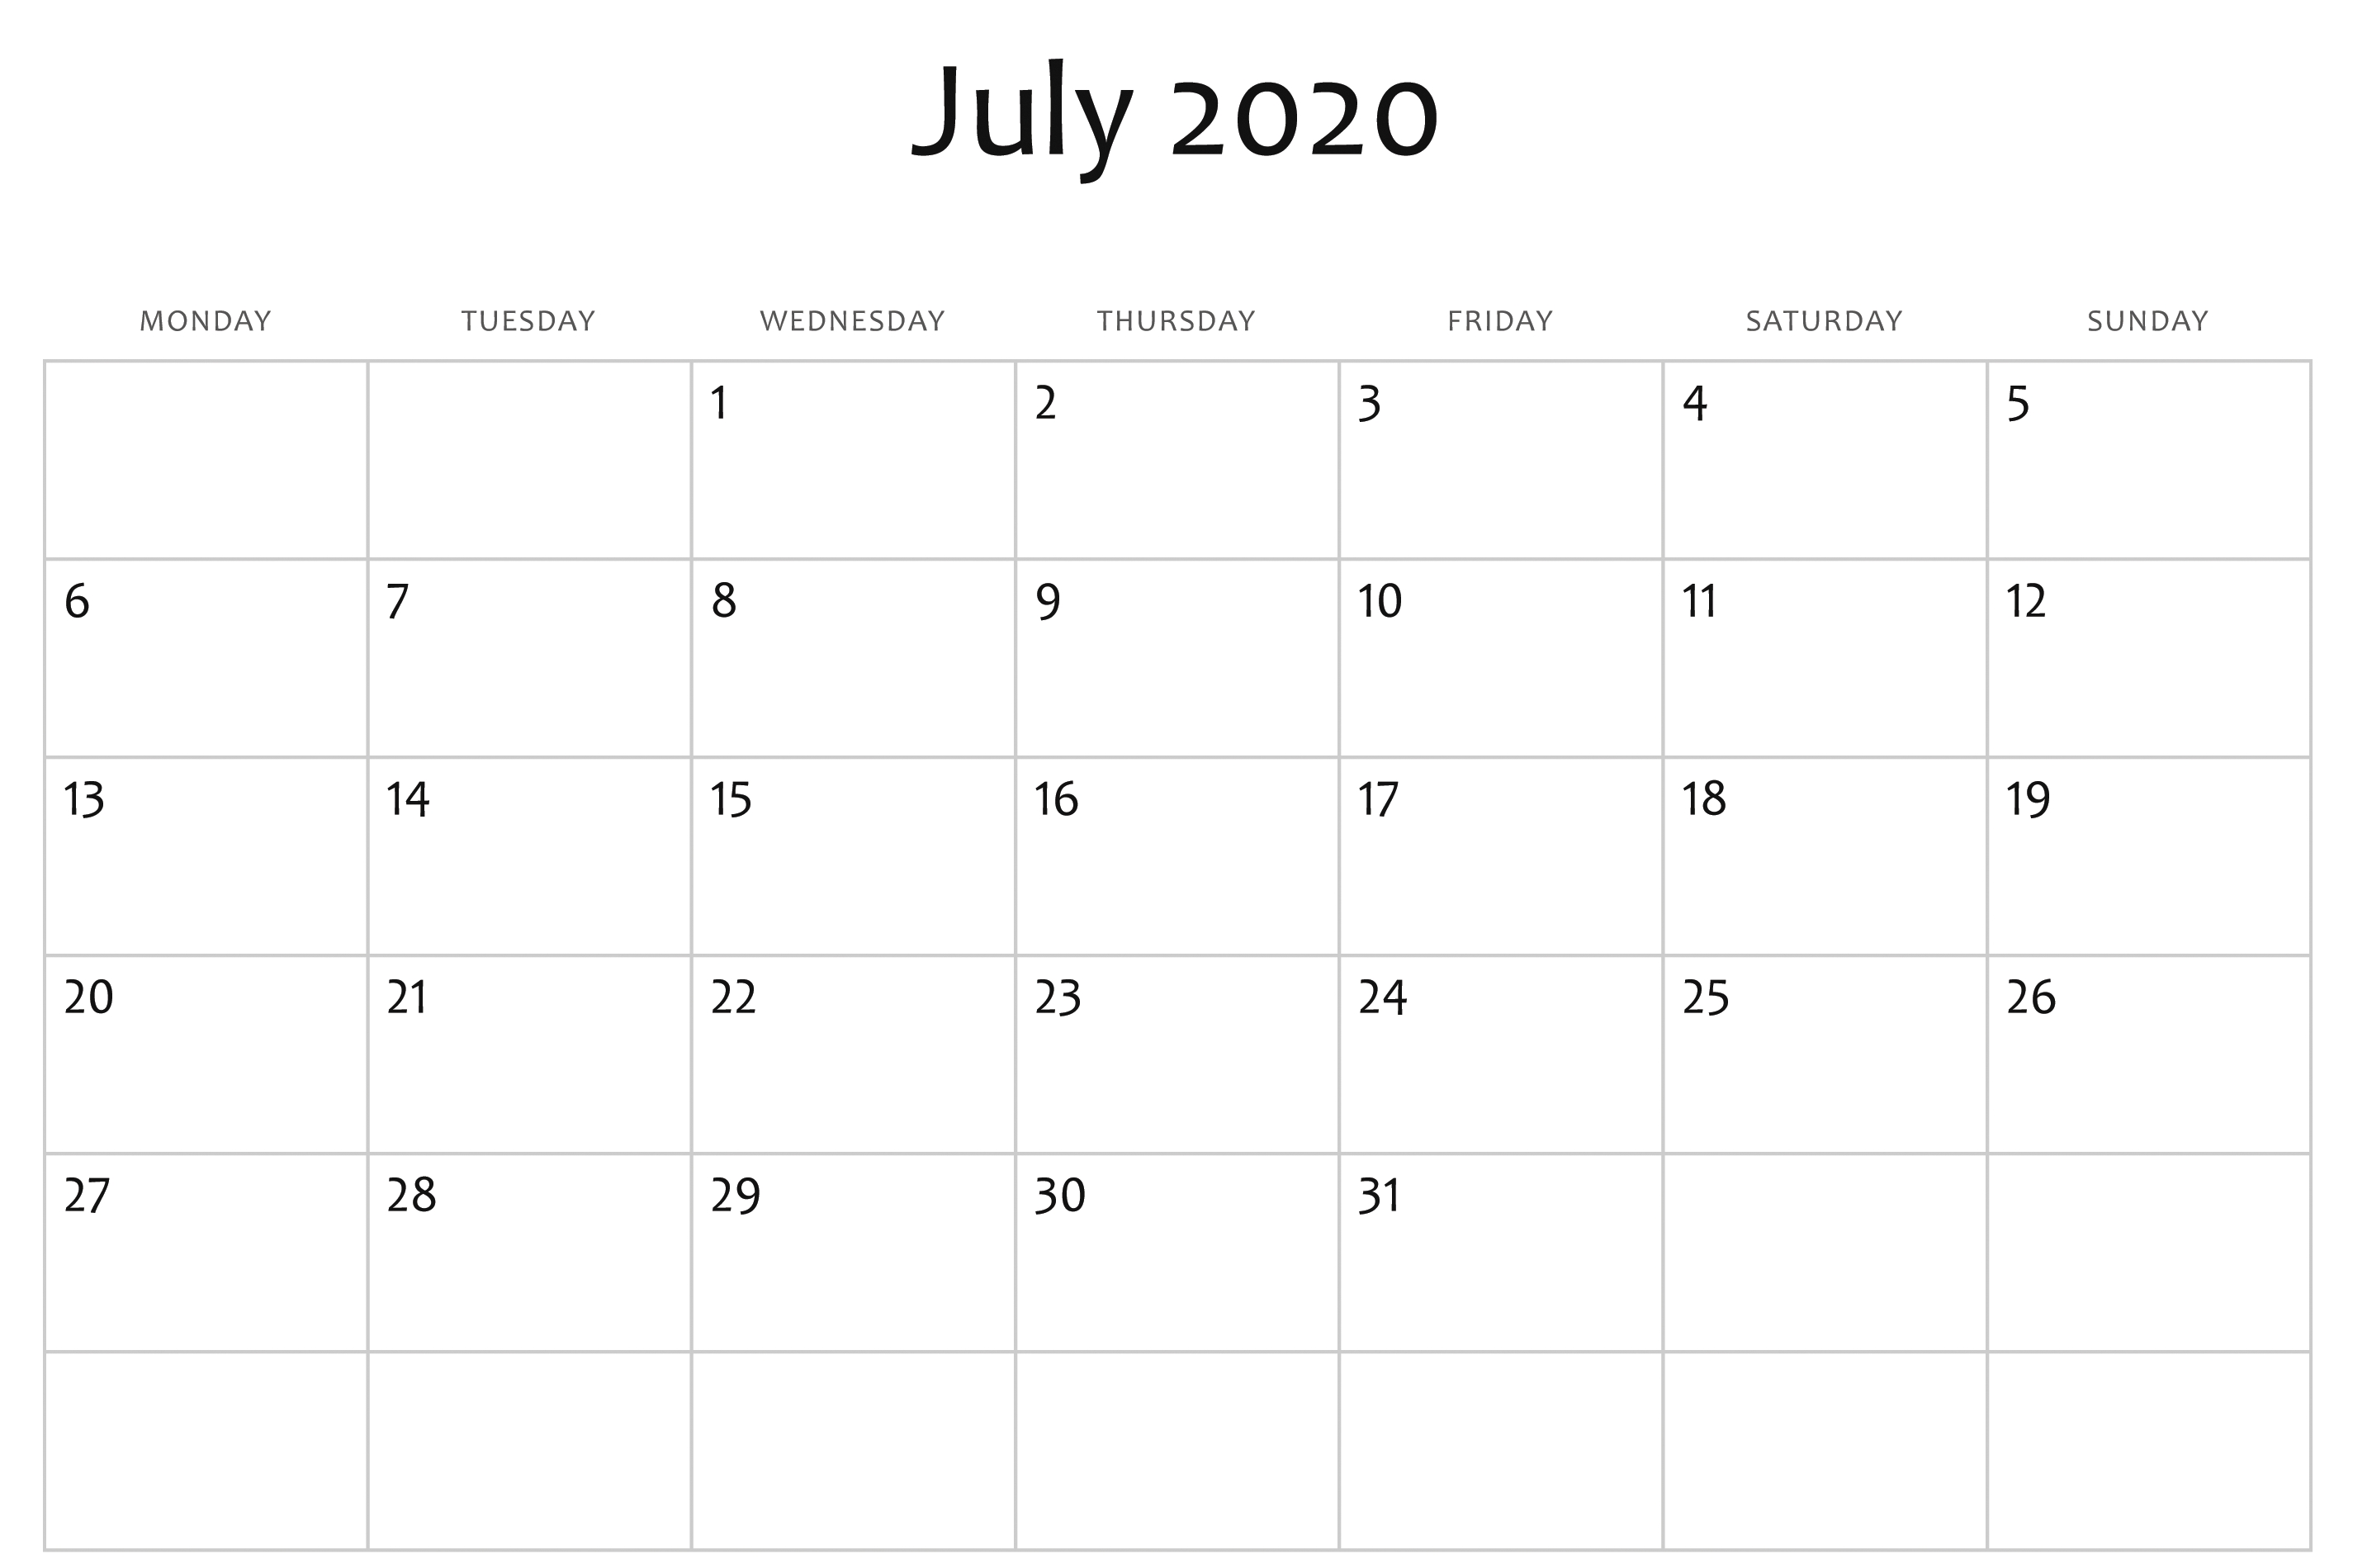 July 2020 Calendar Word | Monthly Calendar Template, Free within Downloadable Calendar 2020 For Word